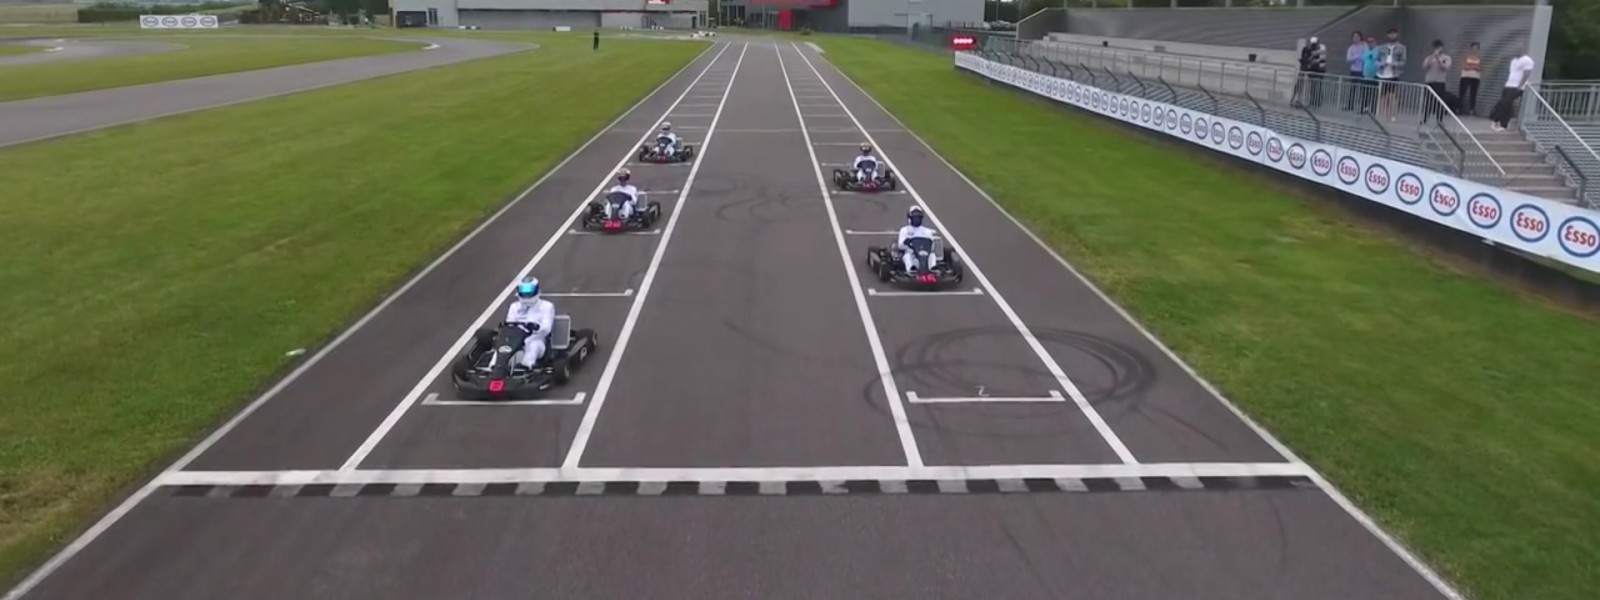 2016 Great Britain - Three Generations of F1 Driver go Go Karting 2